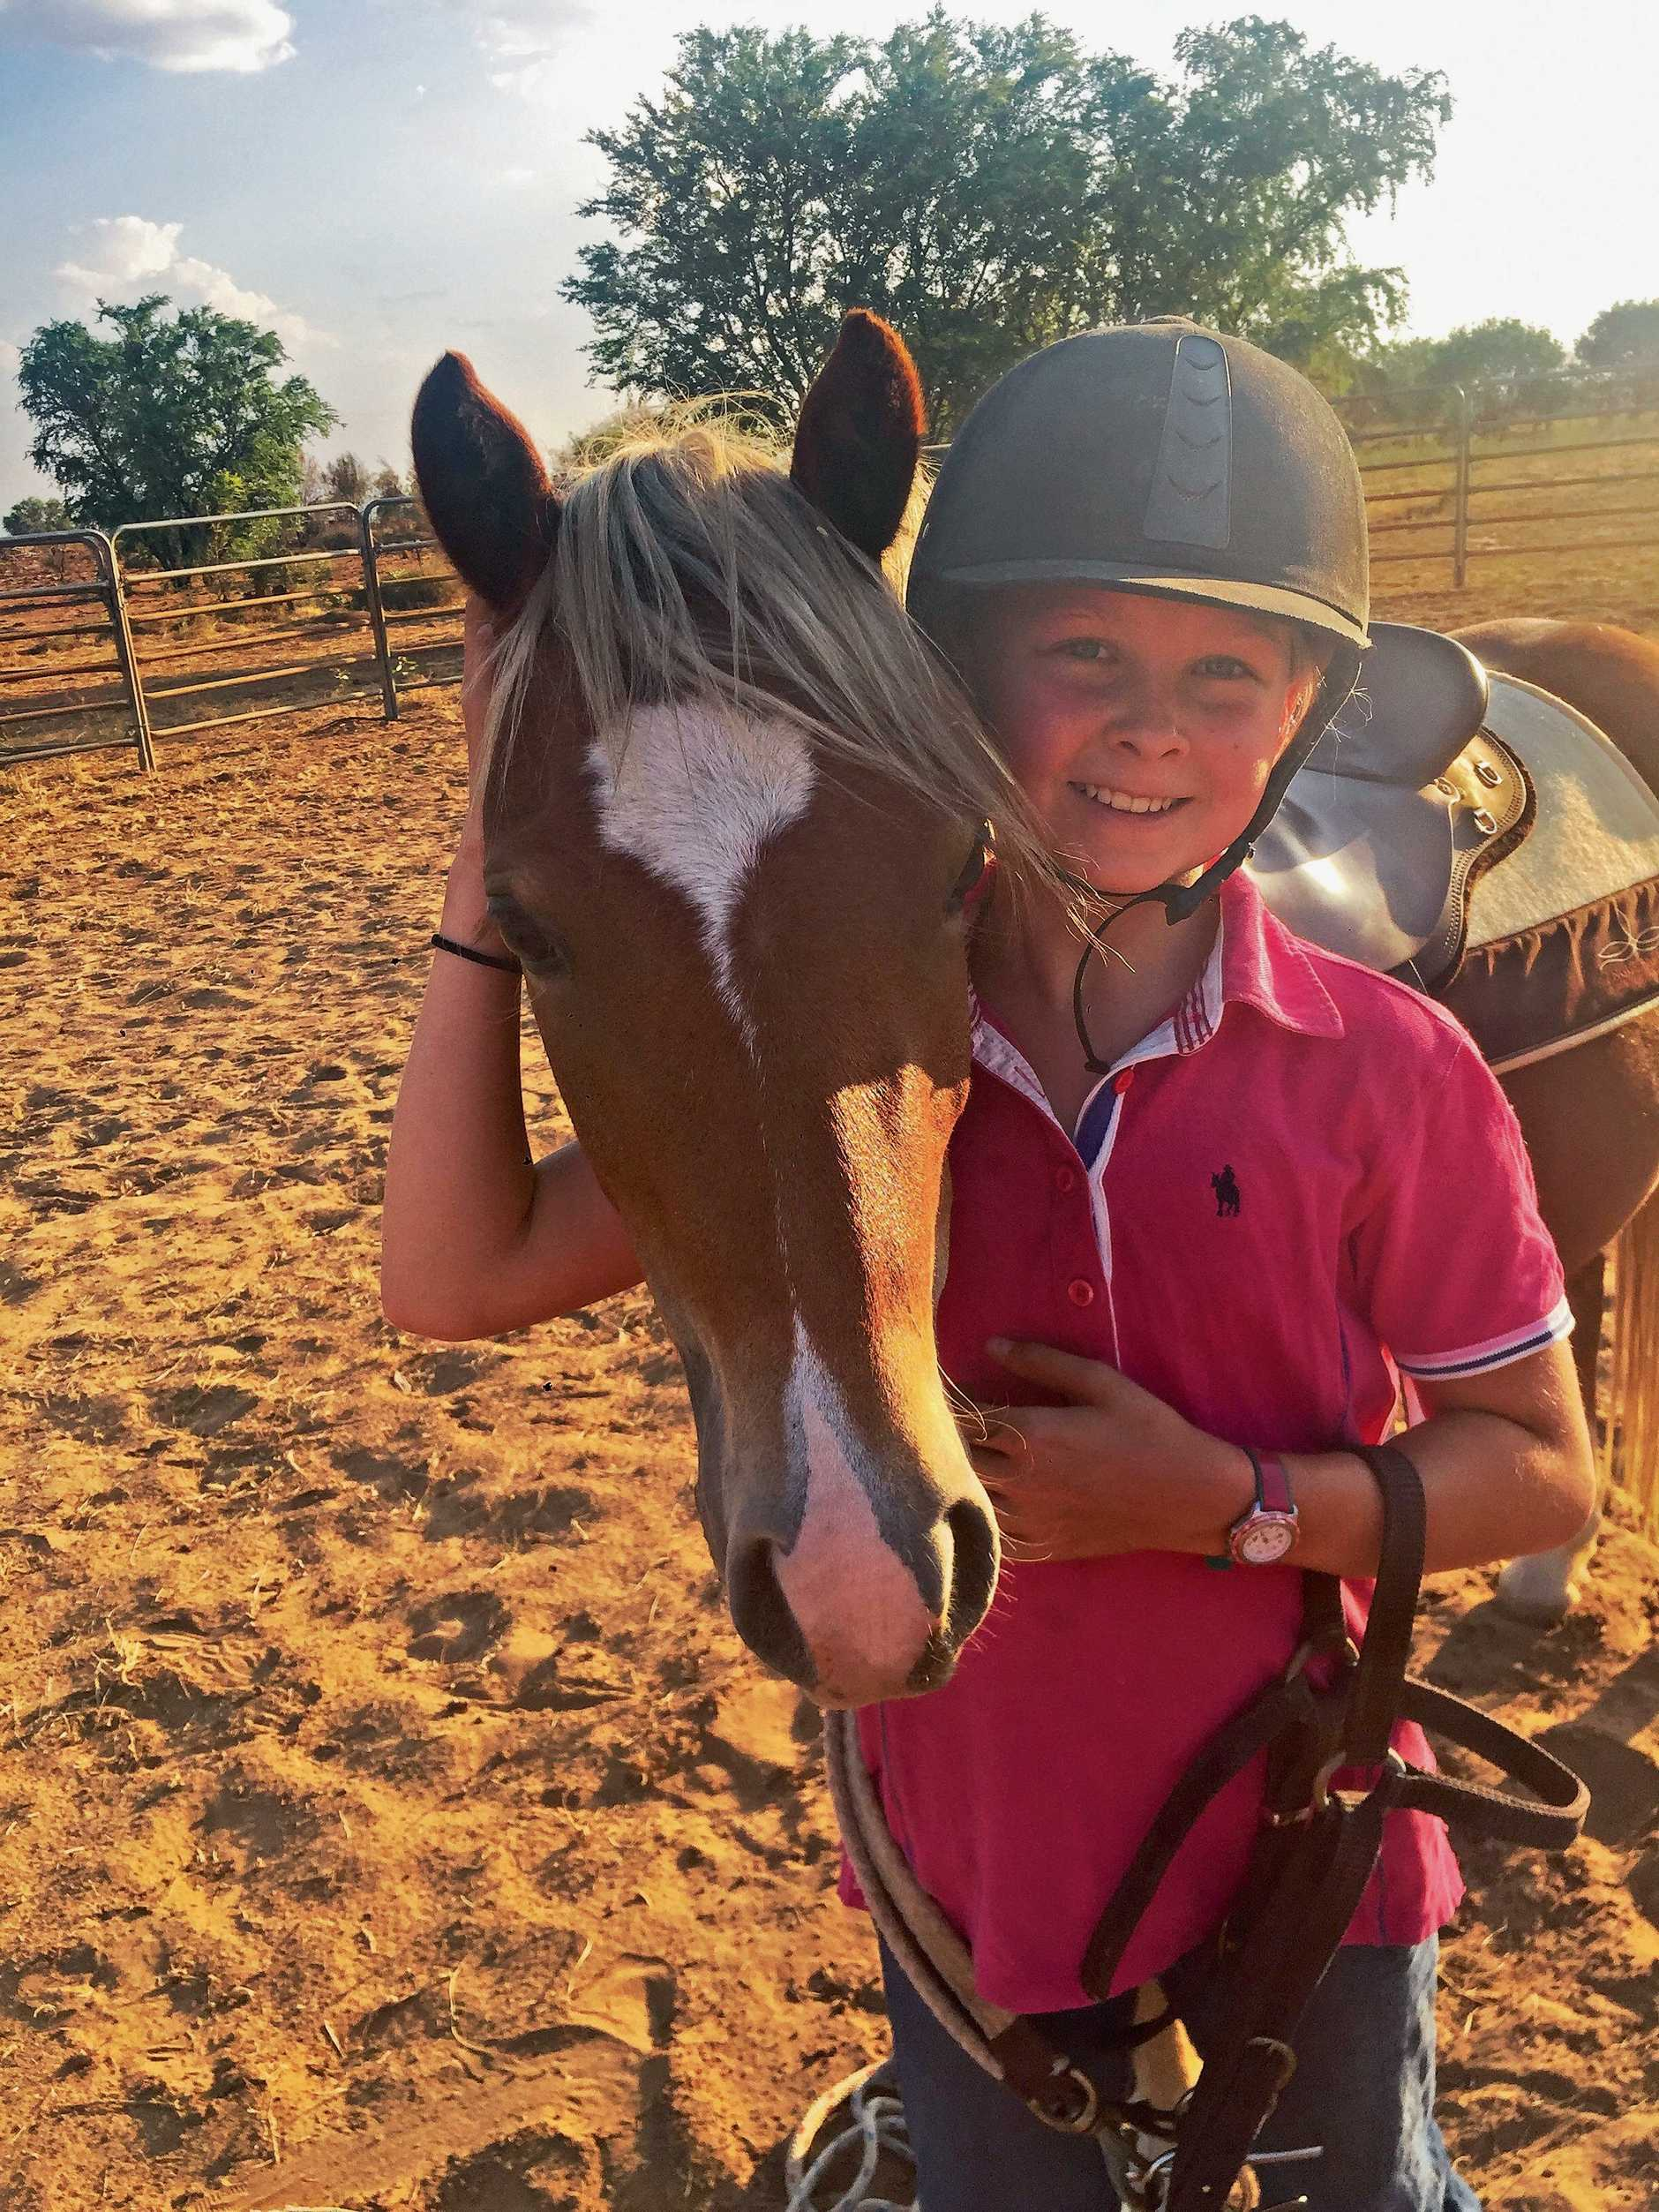 Annabelle Towne with Pumpkin, a three-year-old welsh mountain pony that will be auctioned off to raise money for Dolly's Dream Foundation.